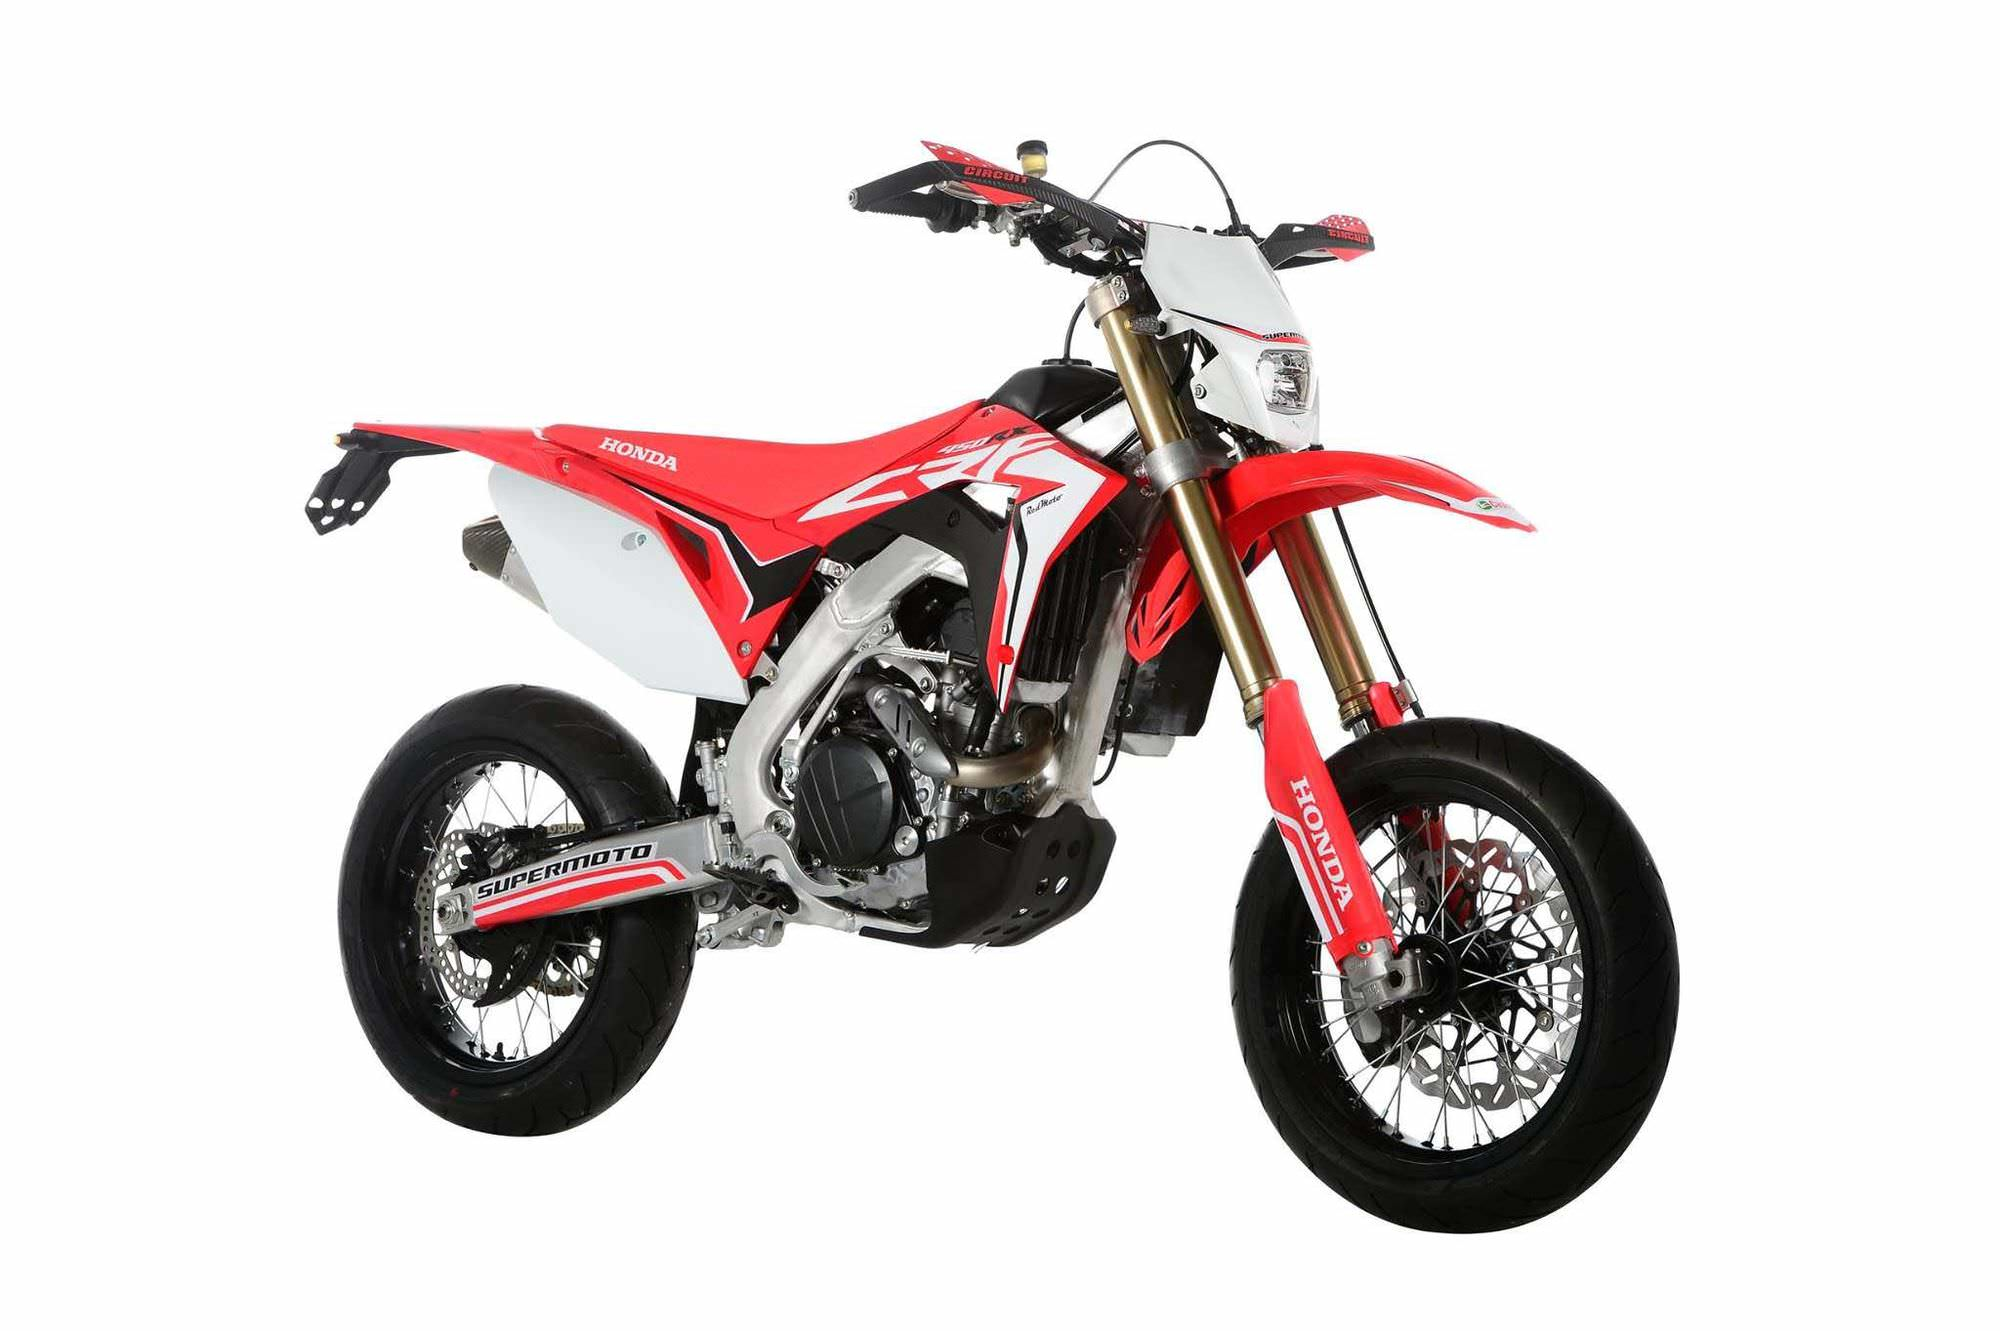 Street Legal 2017 Honda Crf450r Supermoto Bike That You